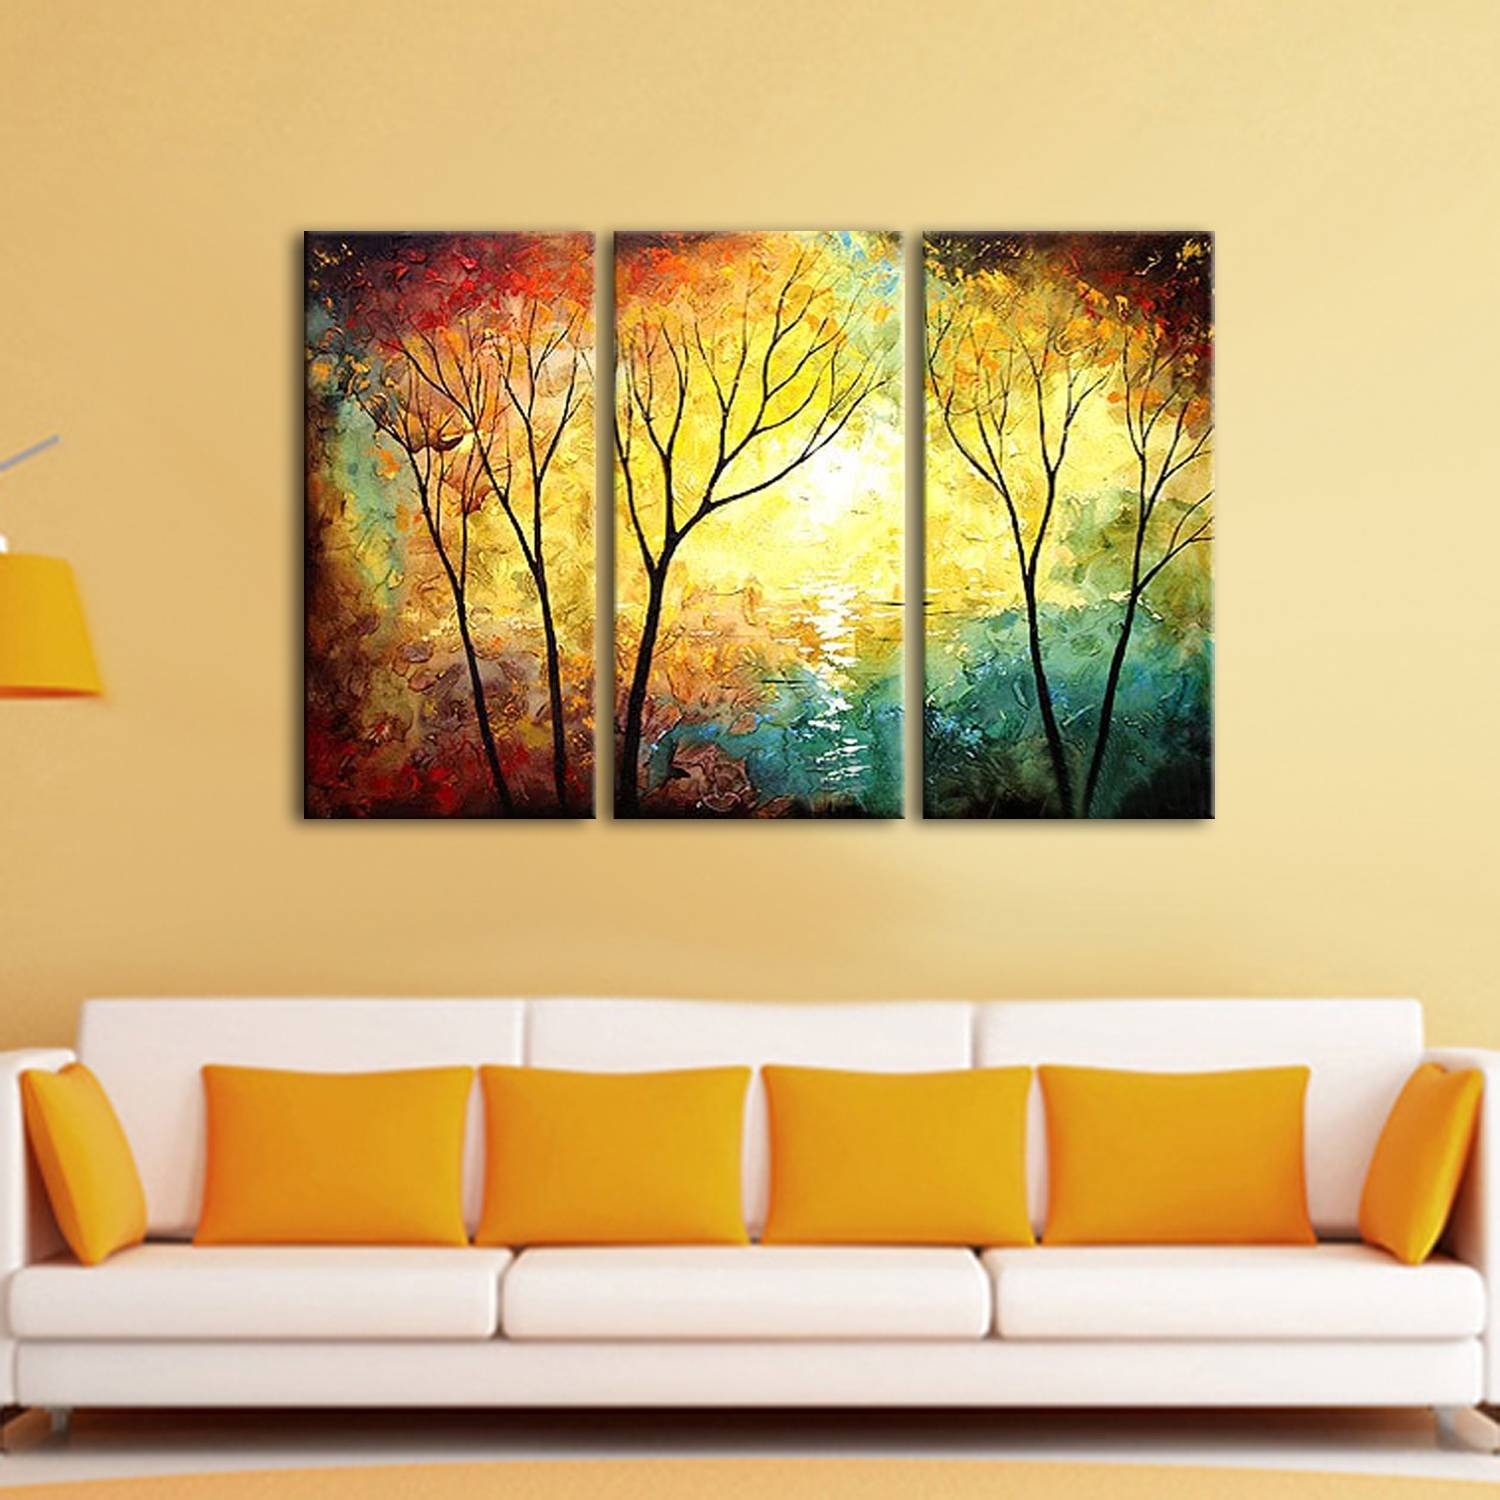 3 Panel Set Wall Art Painting, Yellow Red Tree Oil Painting,oil Inside Most Current Red And Yellow Wall Art (View 7 of 20)